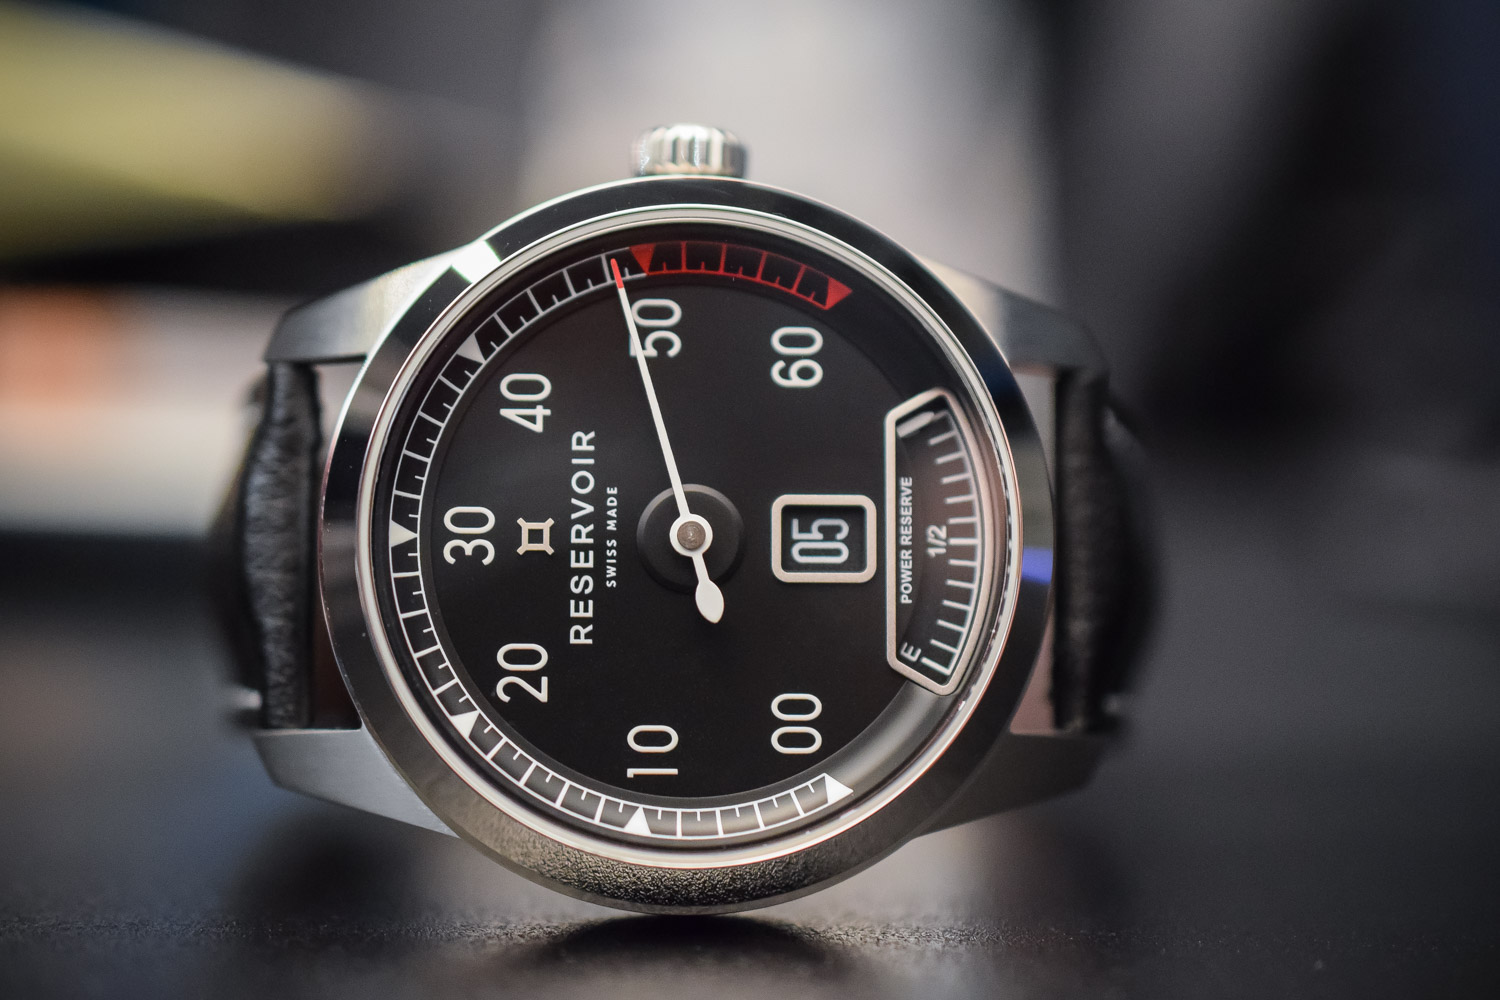 thegentlemanracer racing watches bernard inspired an gu richards g manufacture auto brm com gulf